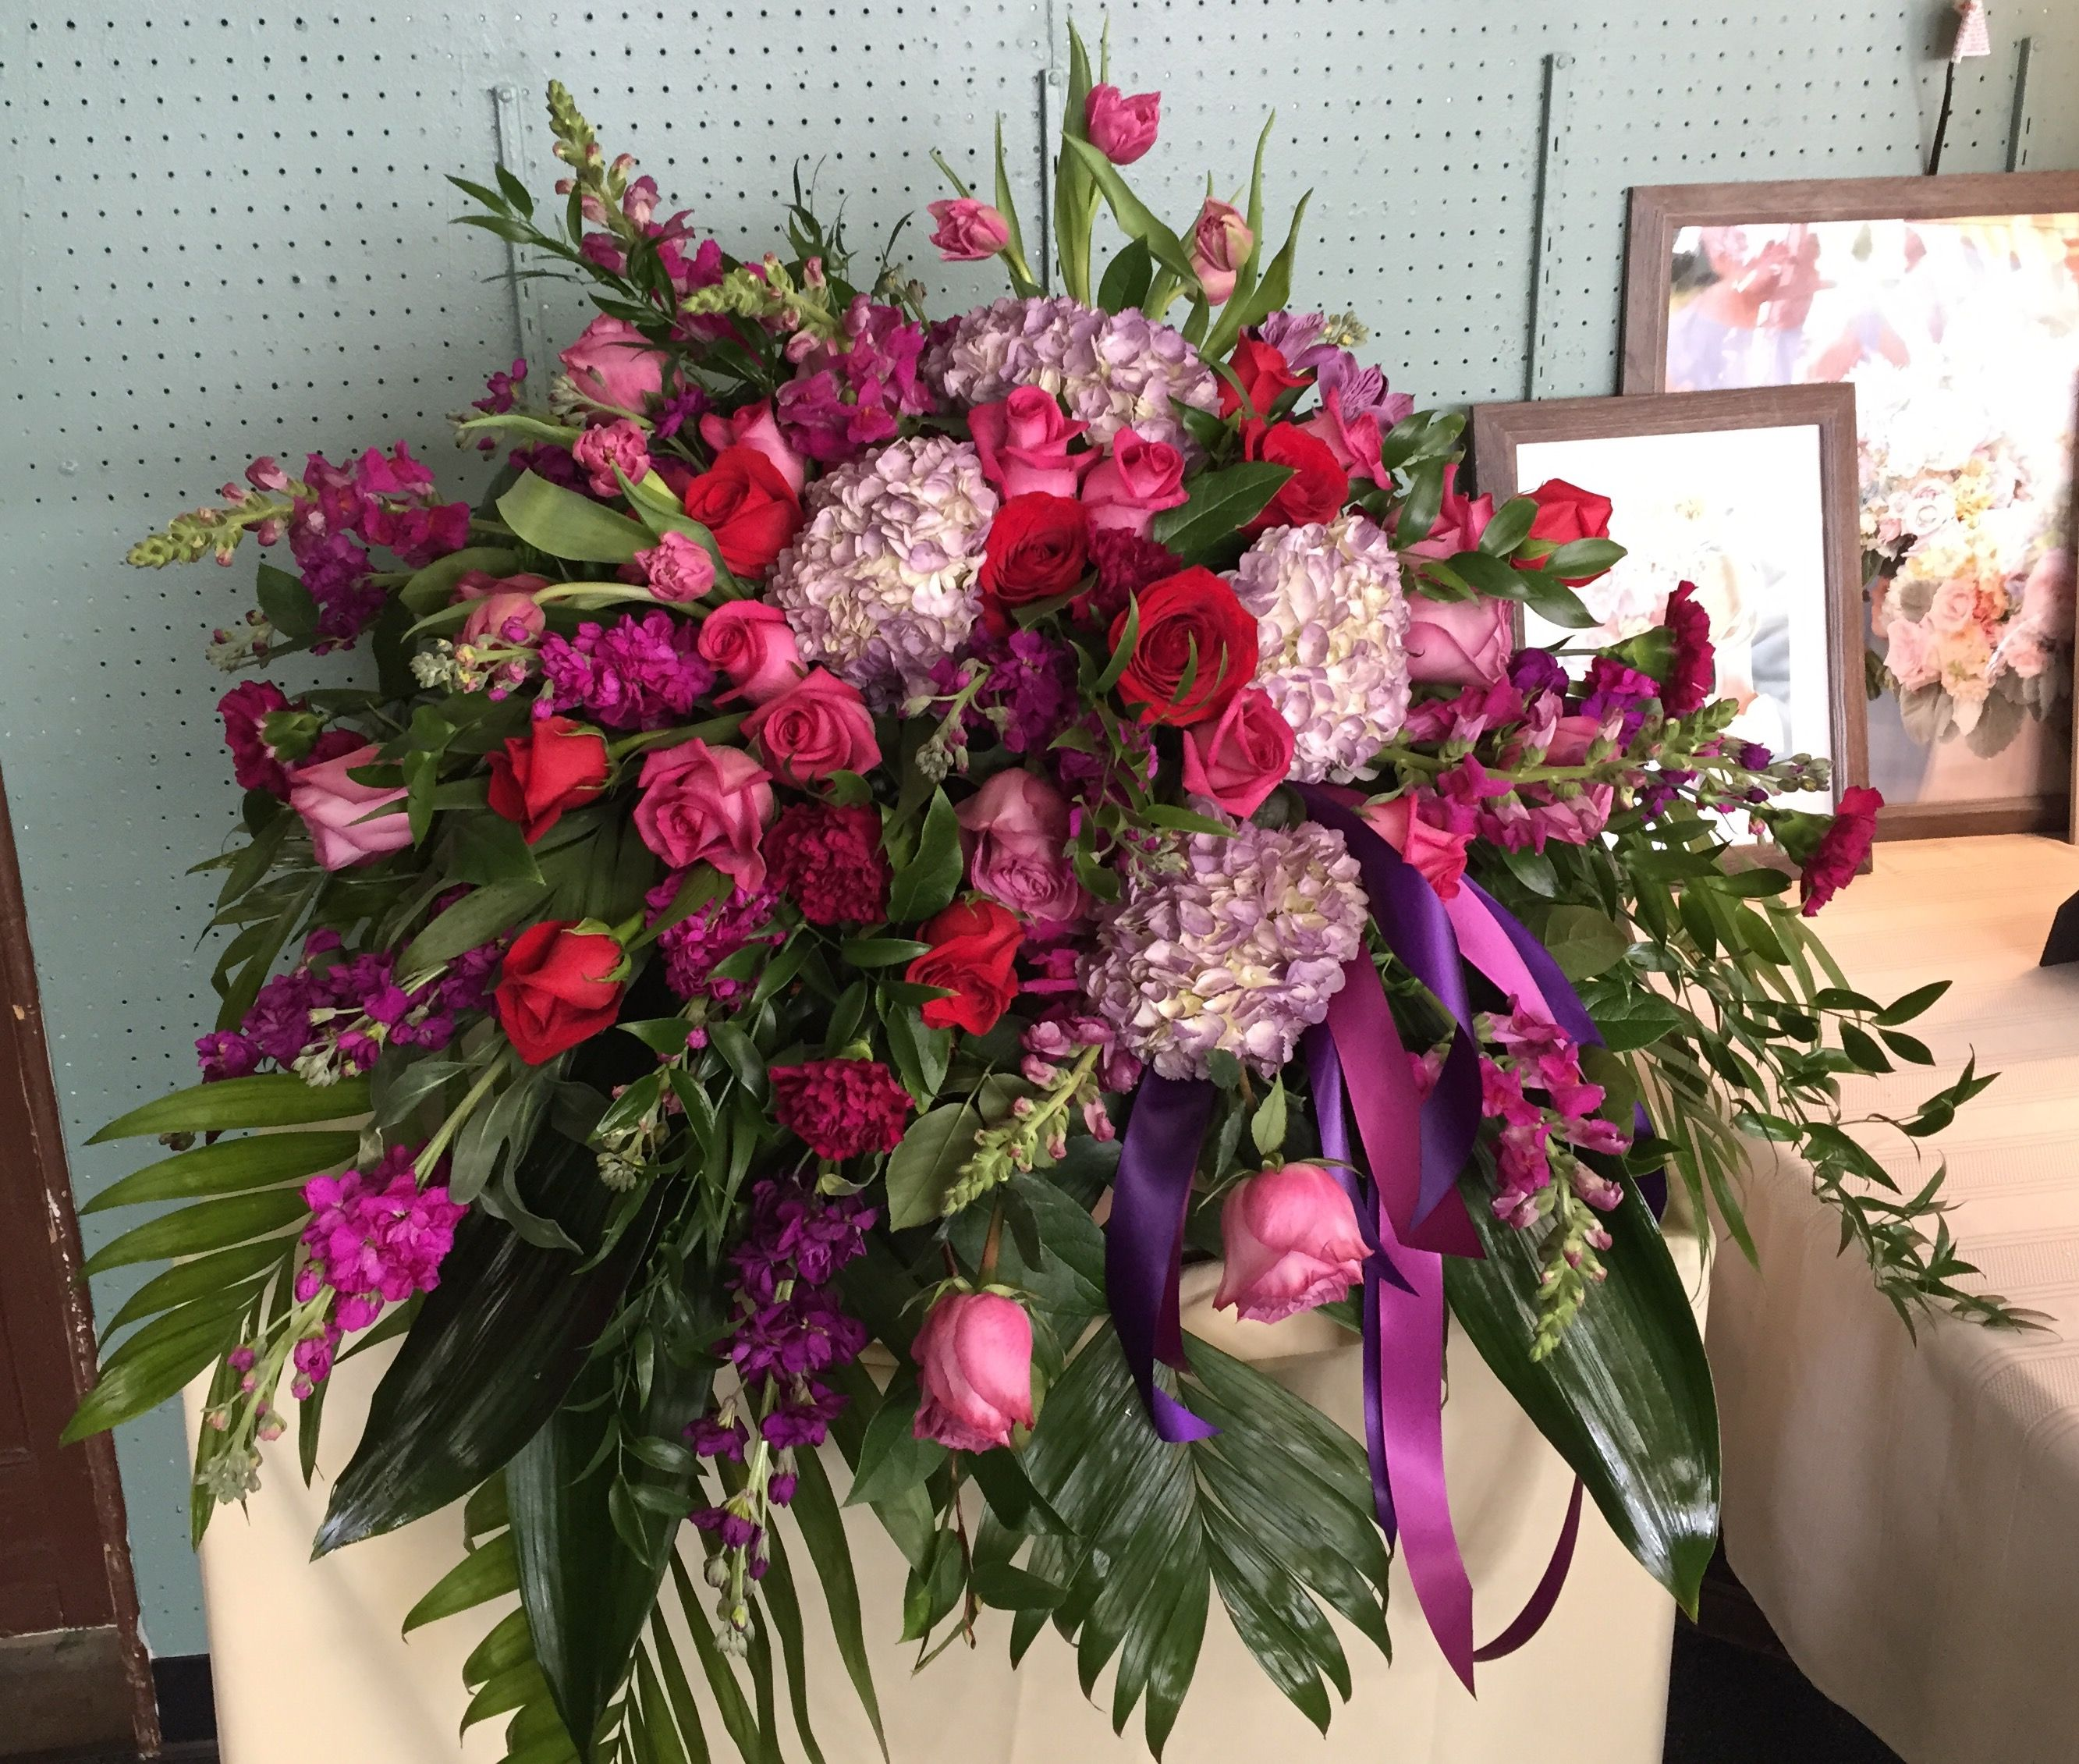 Flowers by jackson florist covington ky sympathy funeral easel order flowers online with same day delivery from jackson florist inc fresh flowers and hand delivered right to your door in covington and surrounding izmirmasajfo Choice Image